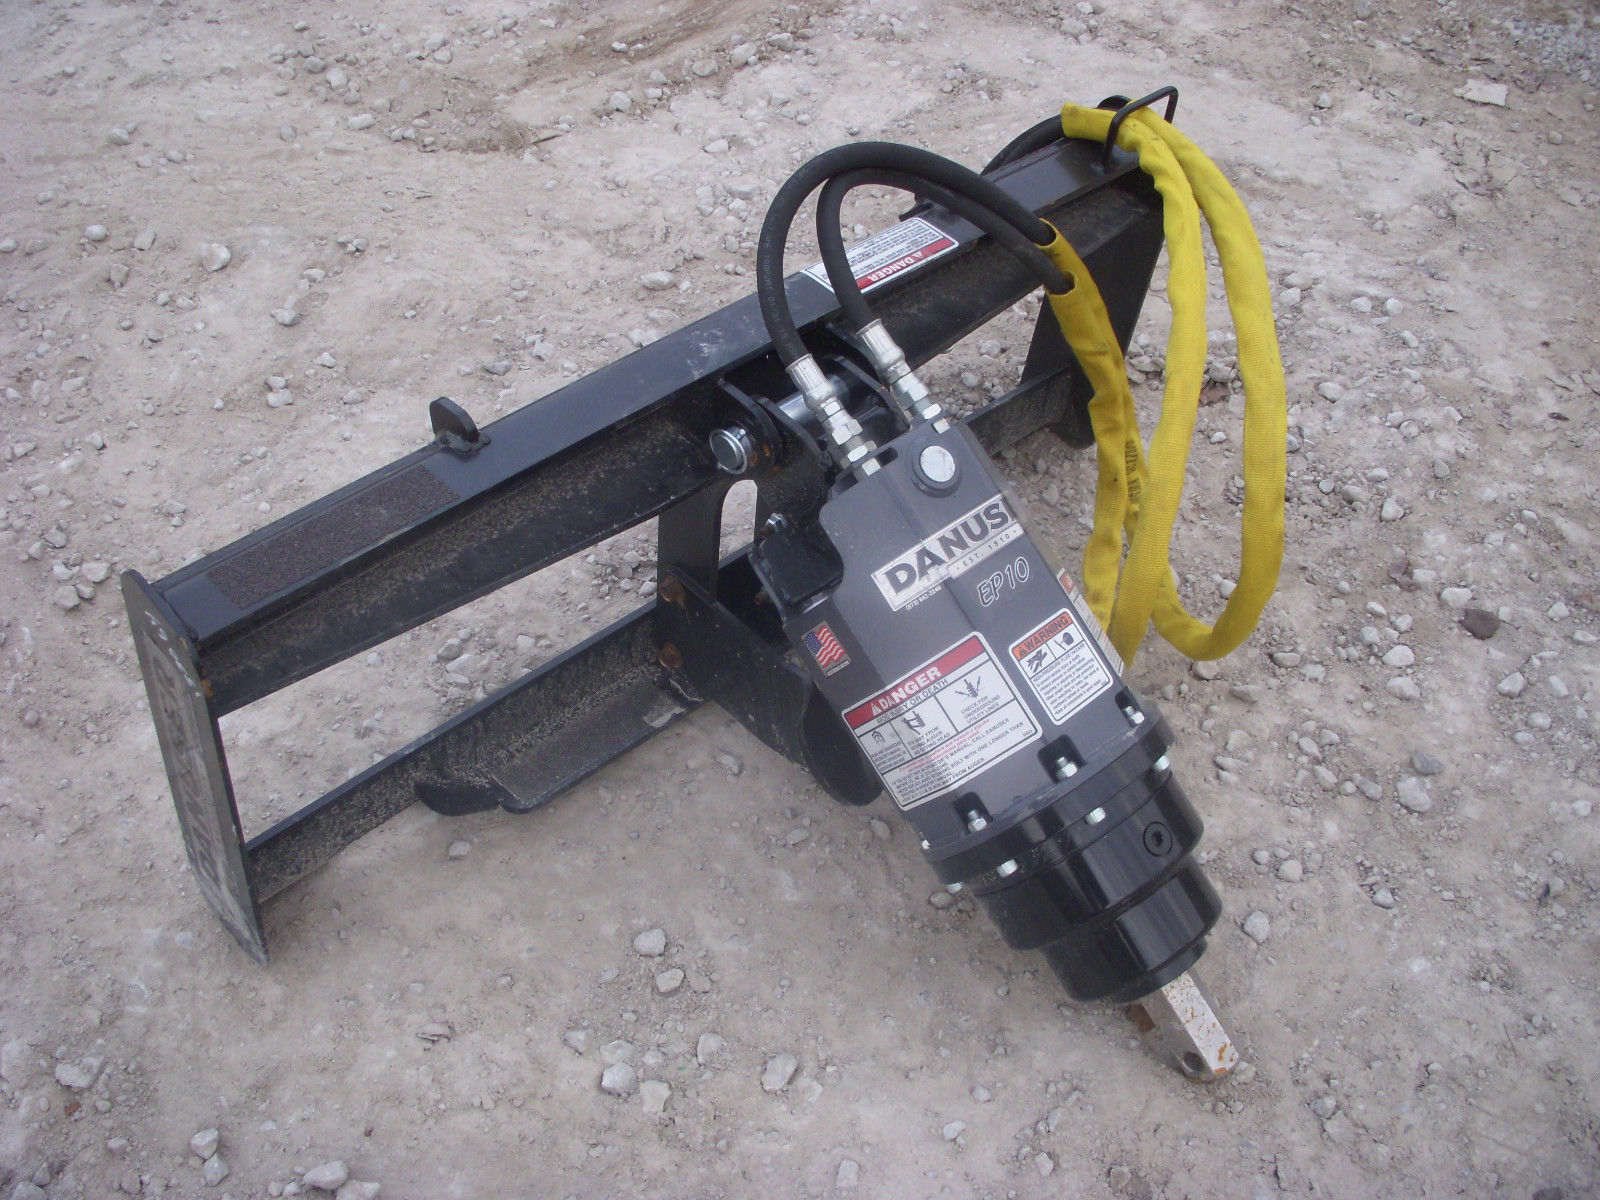 Danuser Ep 10 Hex Auger Drive Unit Skid Steer Attachment